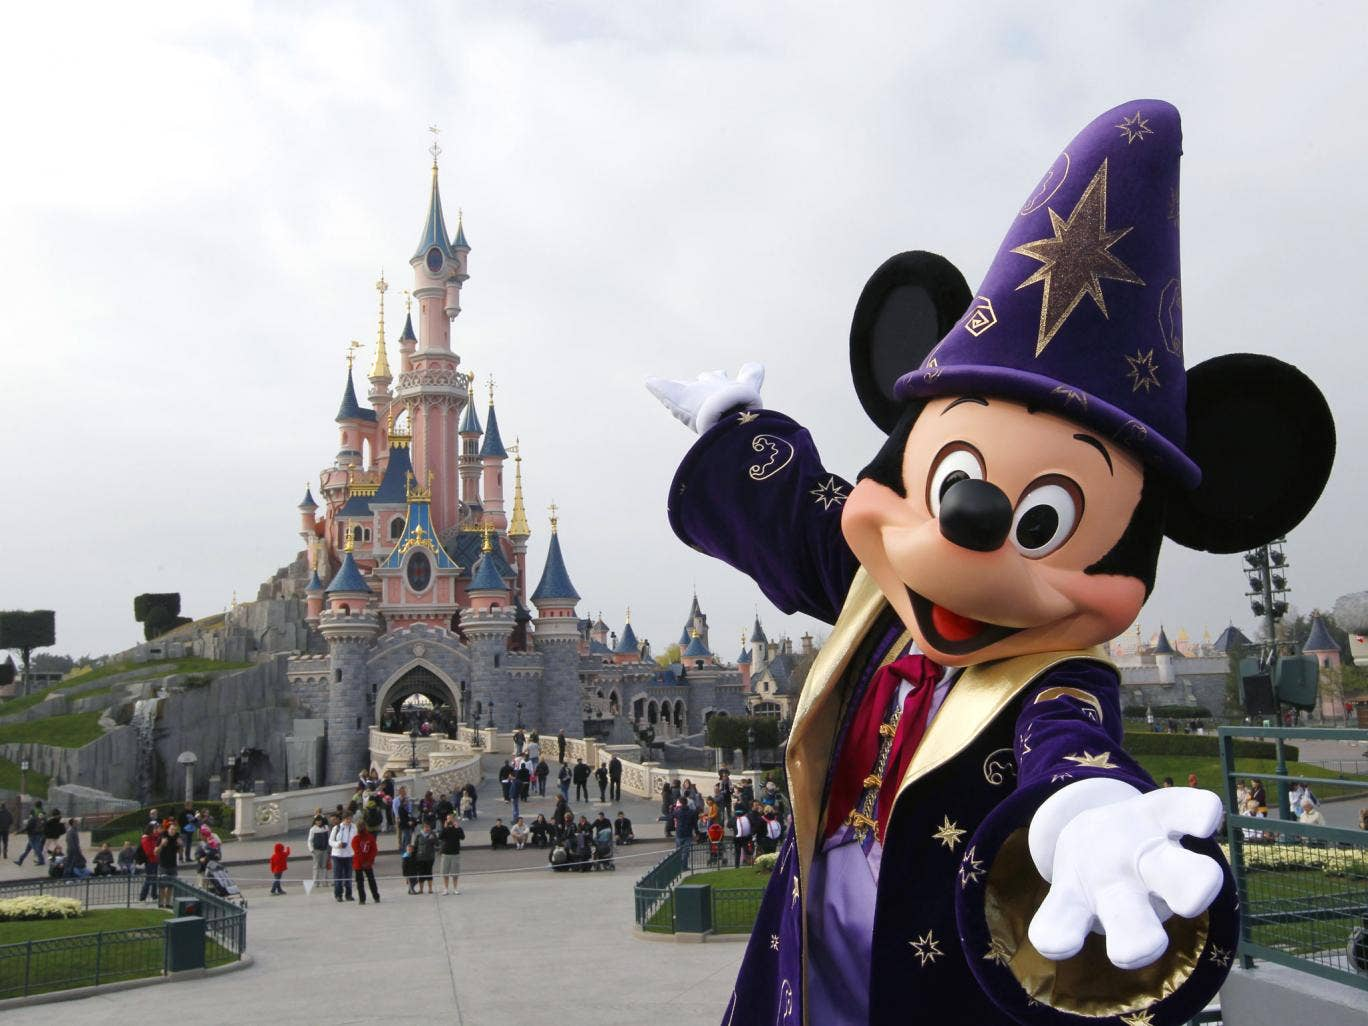 Euro Disney has seen its shares fall by 15 per cent